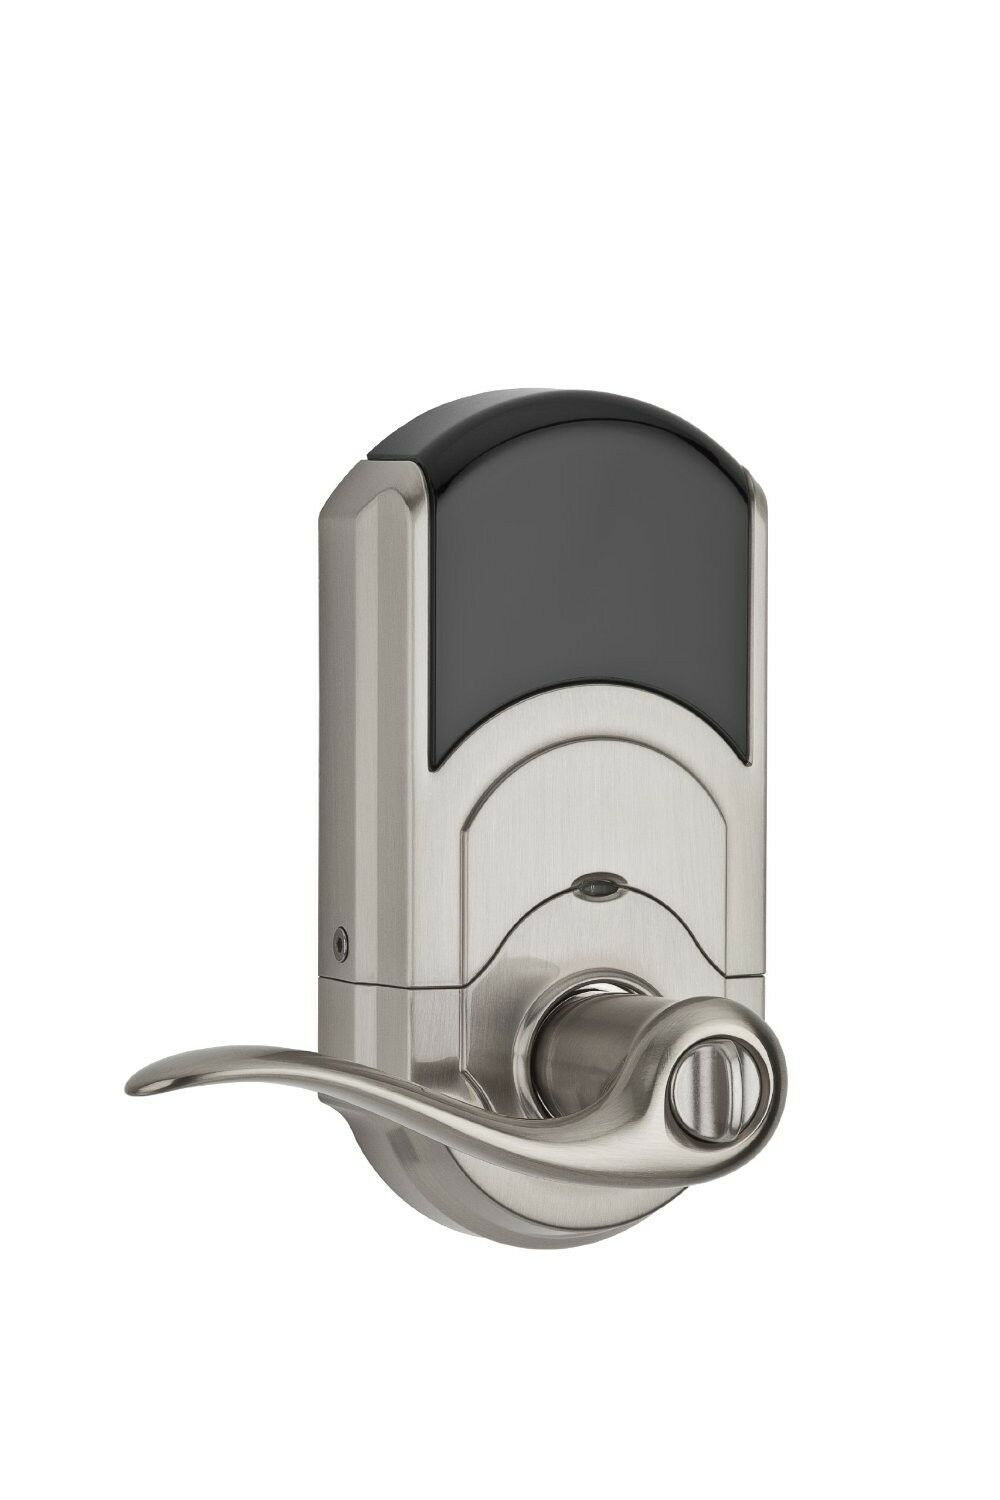 Kwikset smartcode 912 keyless entry lever lock with zwave for Adt z wave door lock